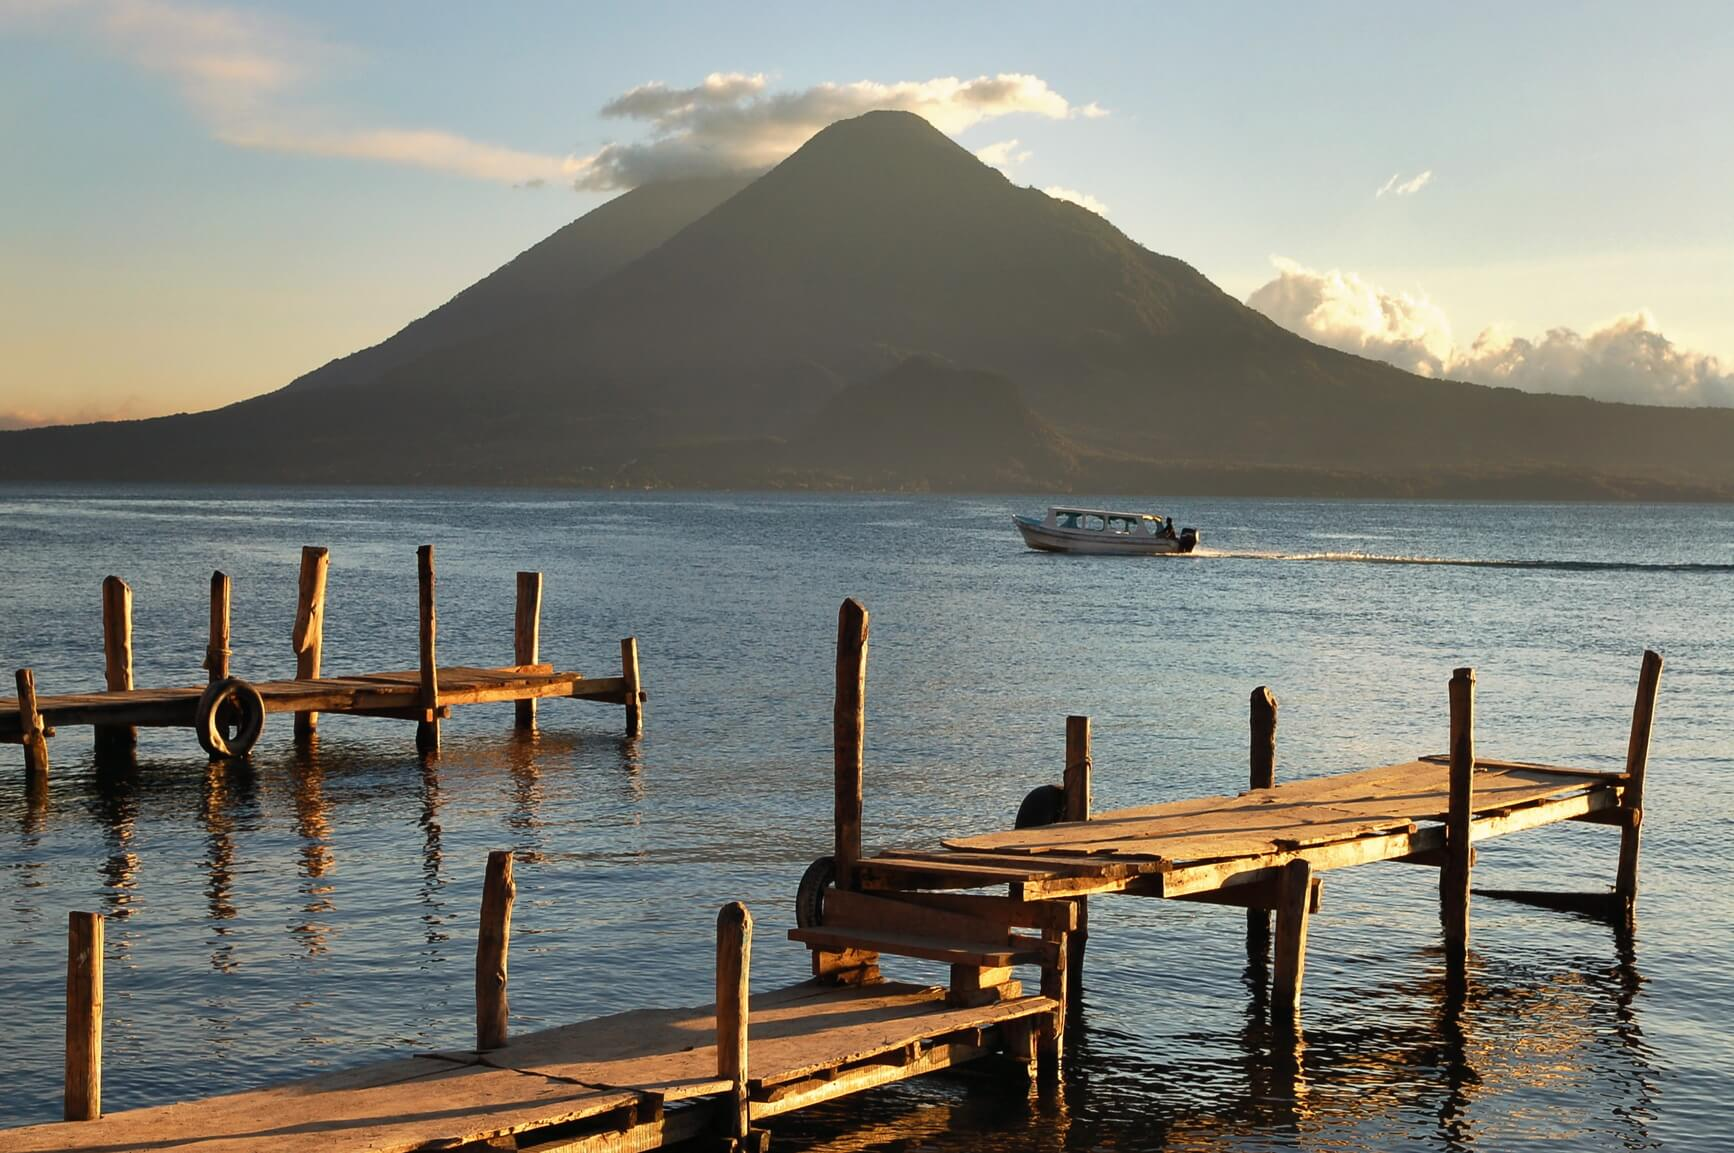 San Francisco to Guatemala for only $254 roundtrip